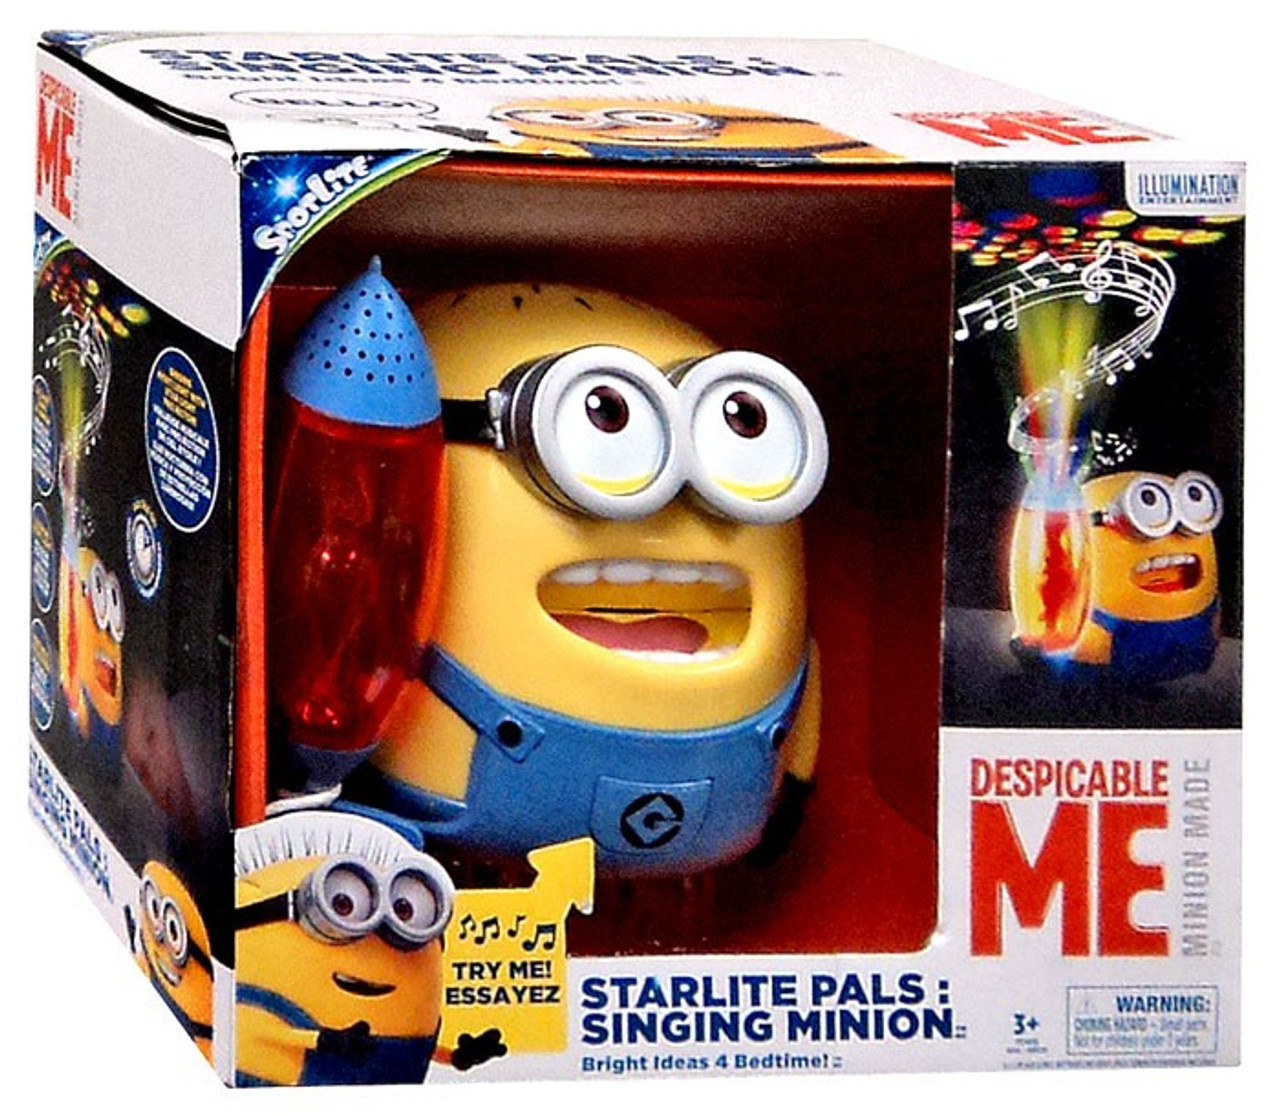 Despicable Me Minions Movie Starlite Pals Singing Minion 7